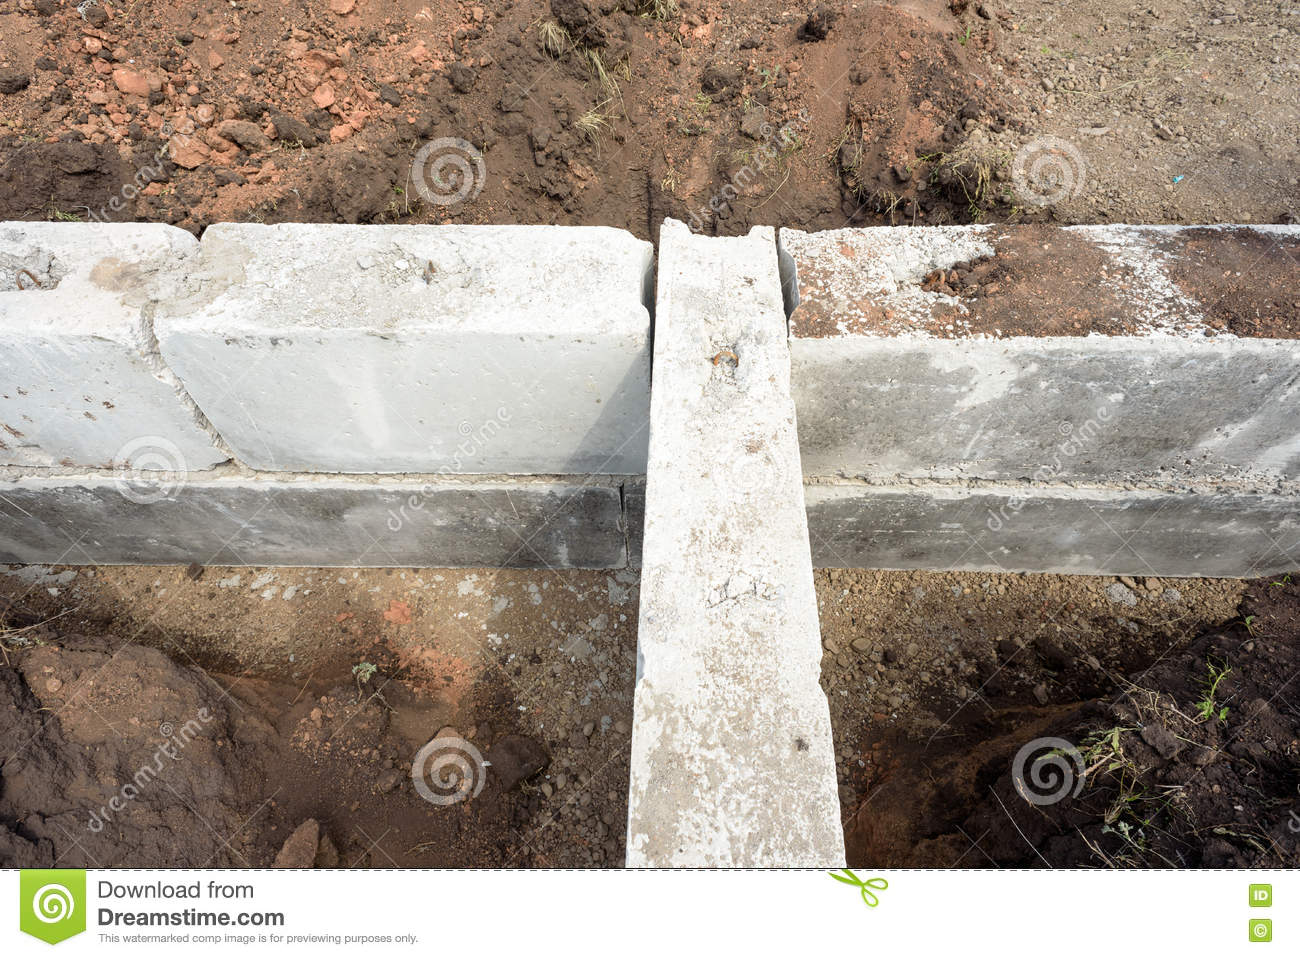 Concrete building block house foundations in earth stock for Cinder block house construction